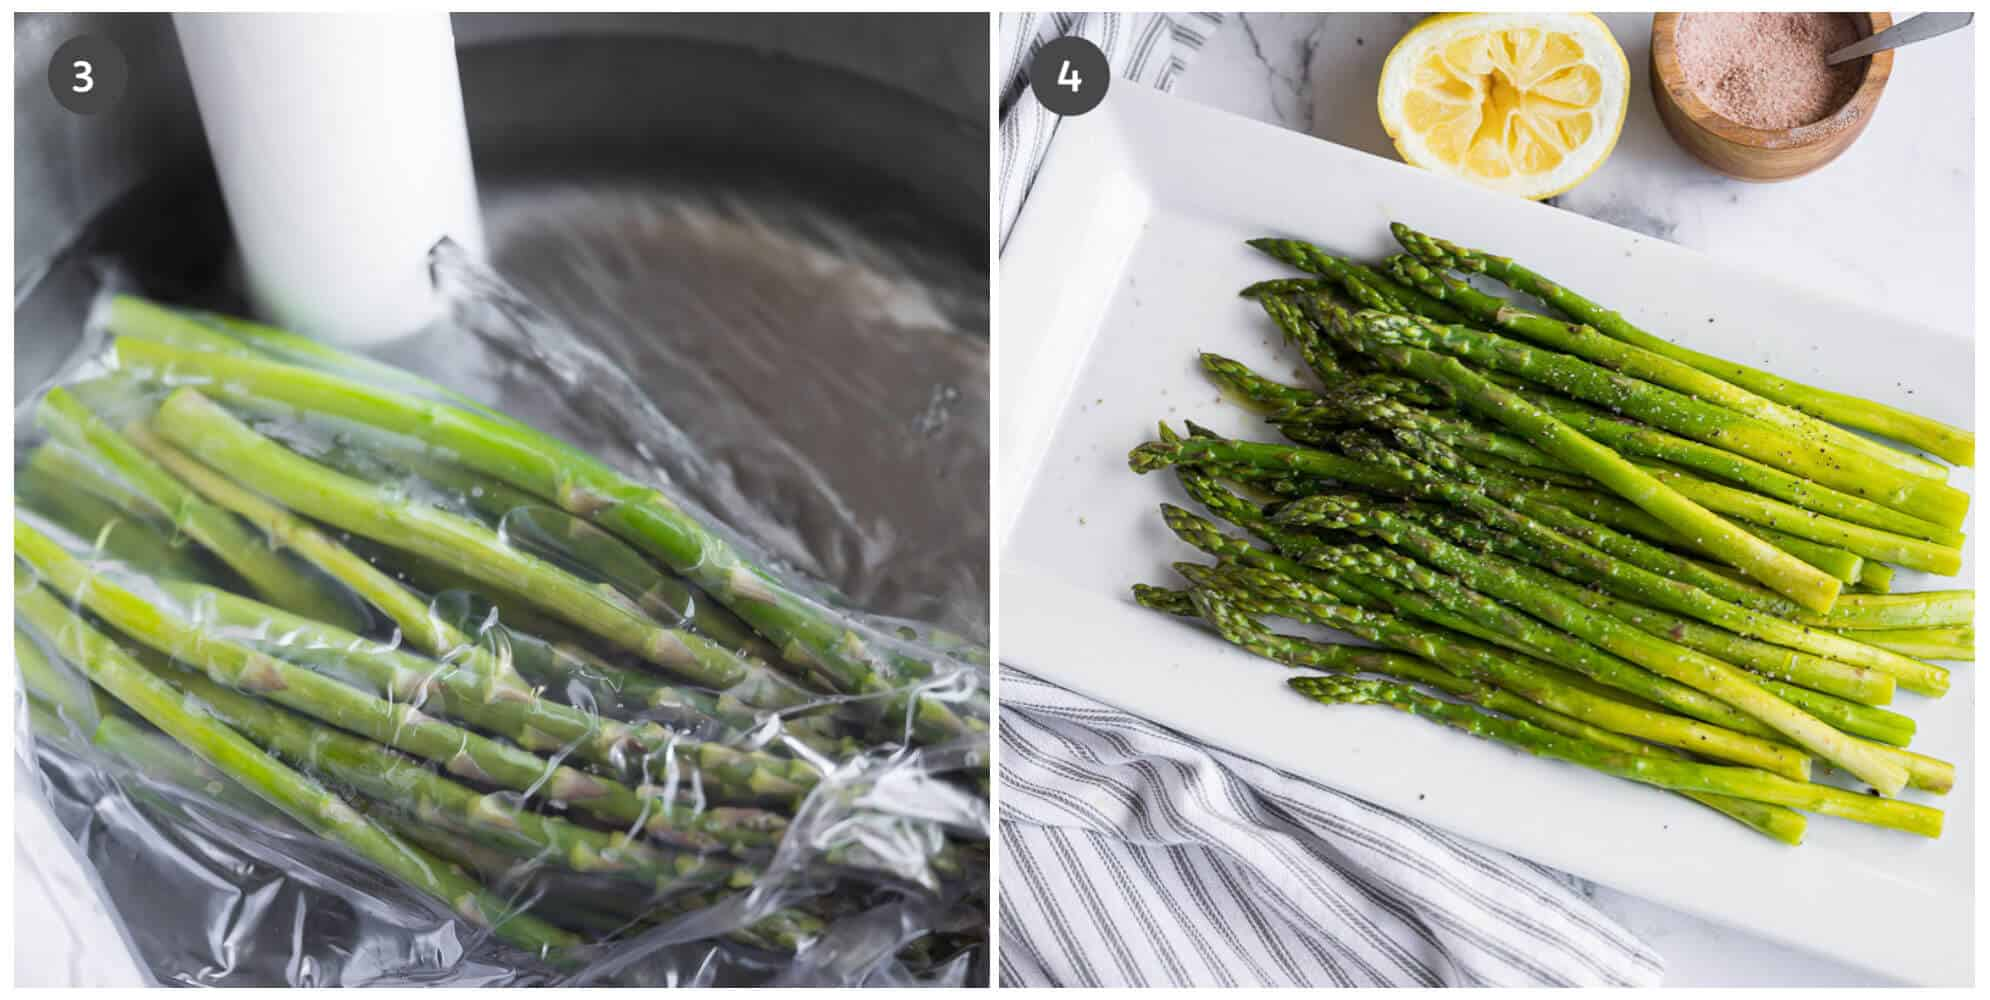 collage of 2 photos showing asparagus during and after cooking with a sous vide wand